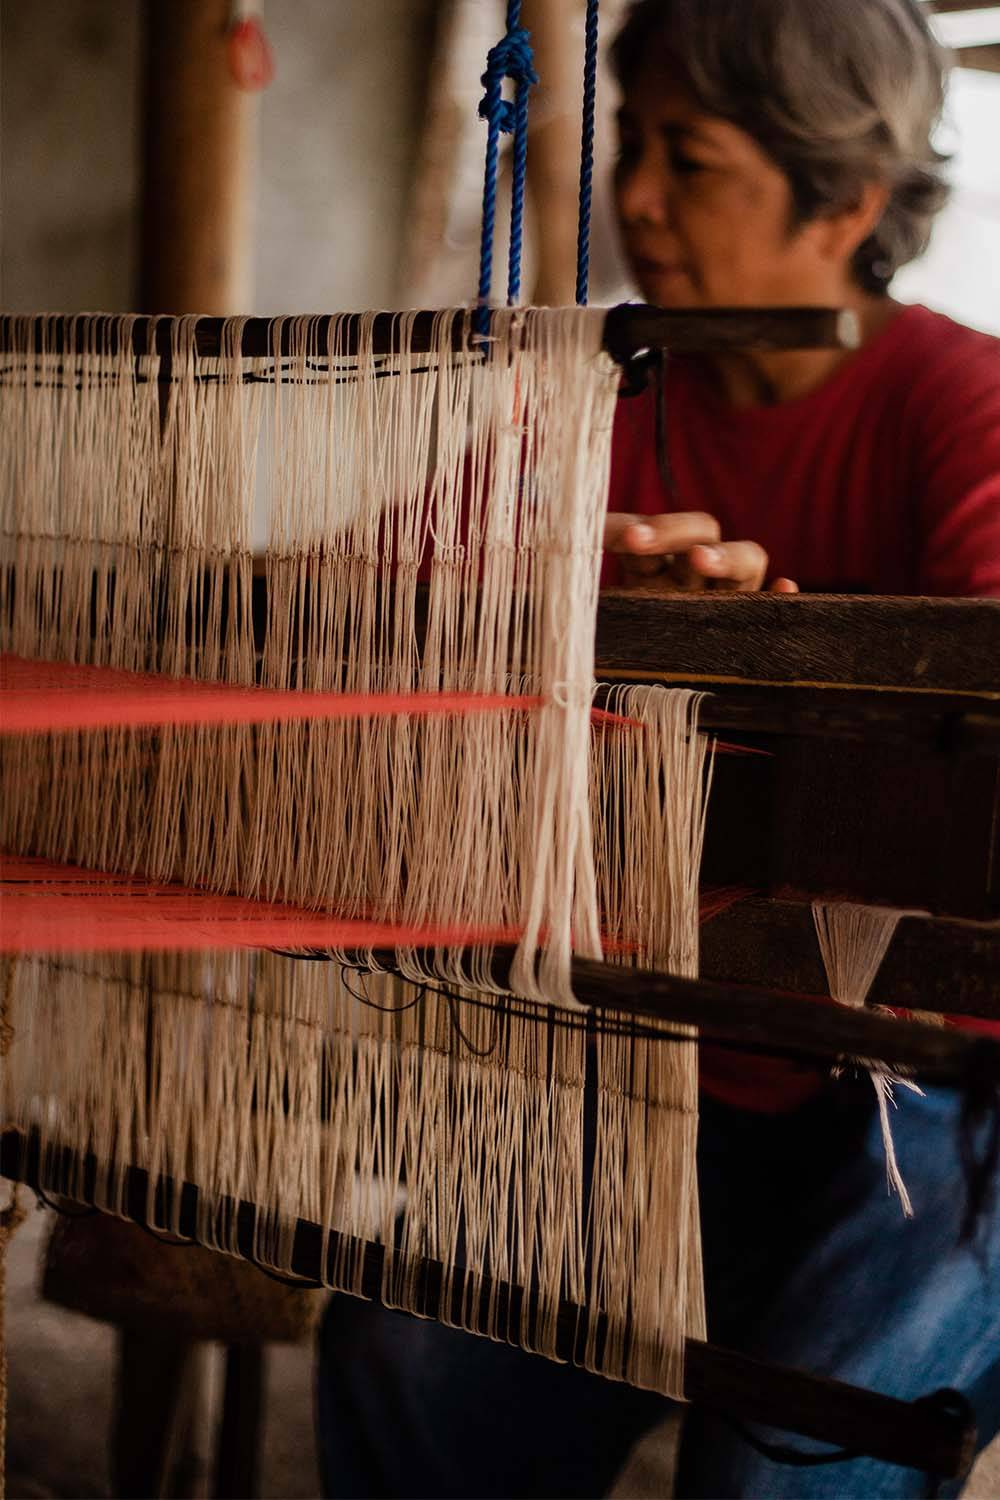 abaca cultivation fabric manufacturing woven